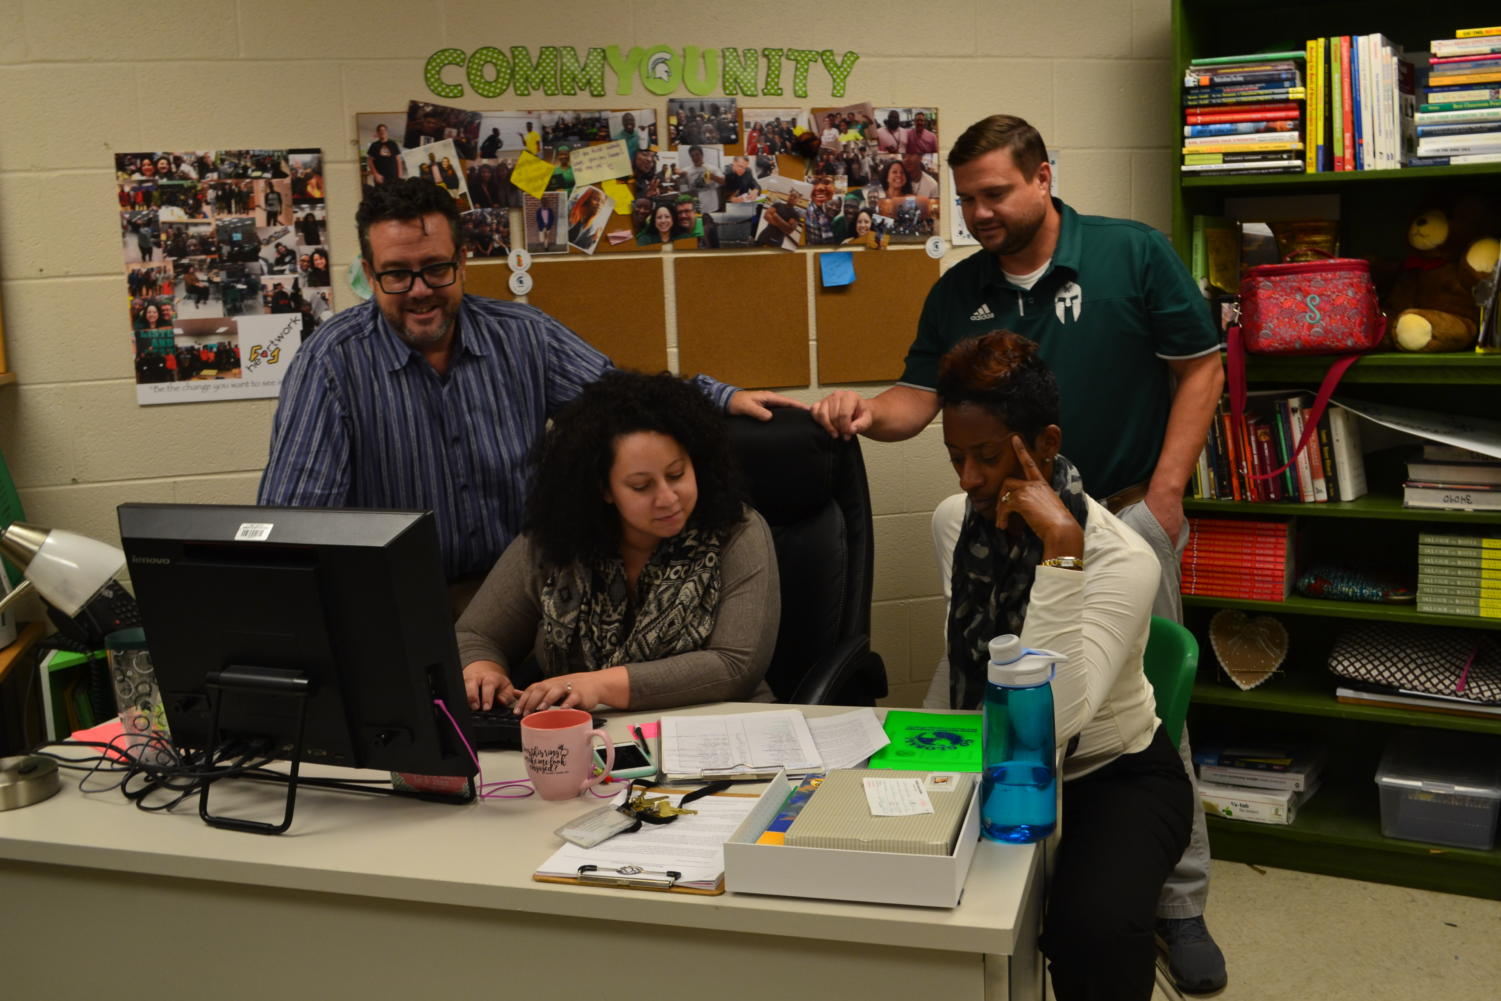 Terry NeSmith, Susan Satar, Tammy Hayes and Marion Smith working on their daily duties.